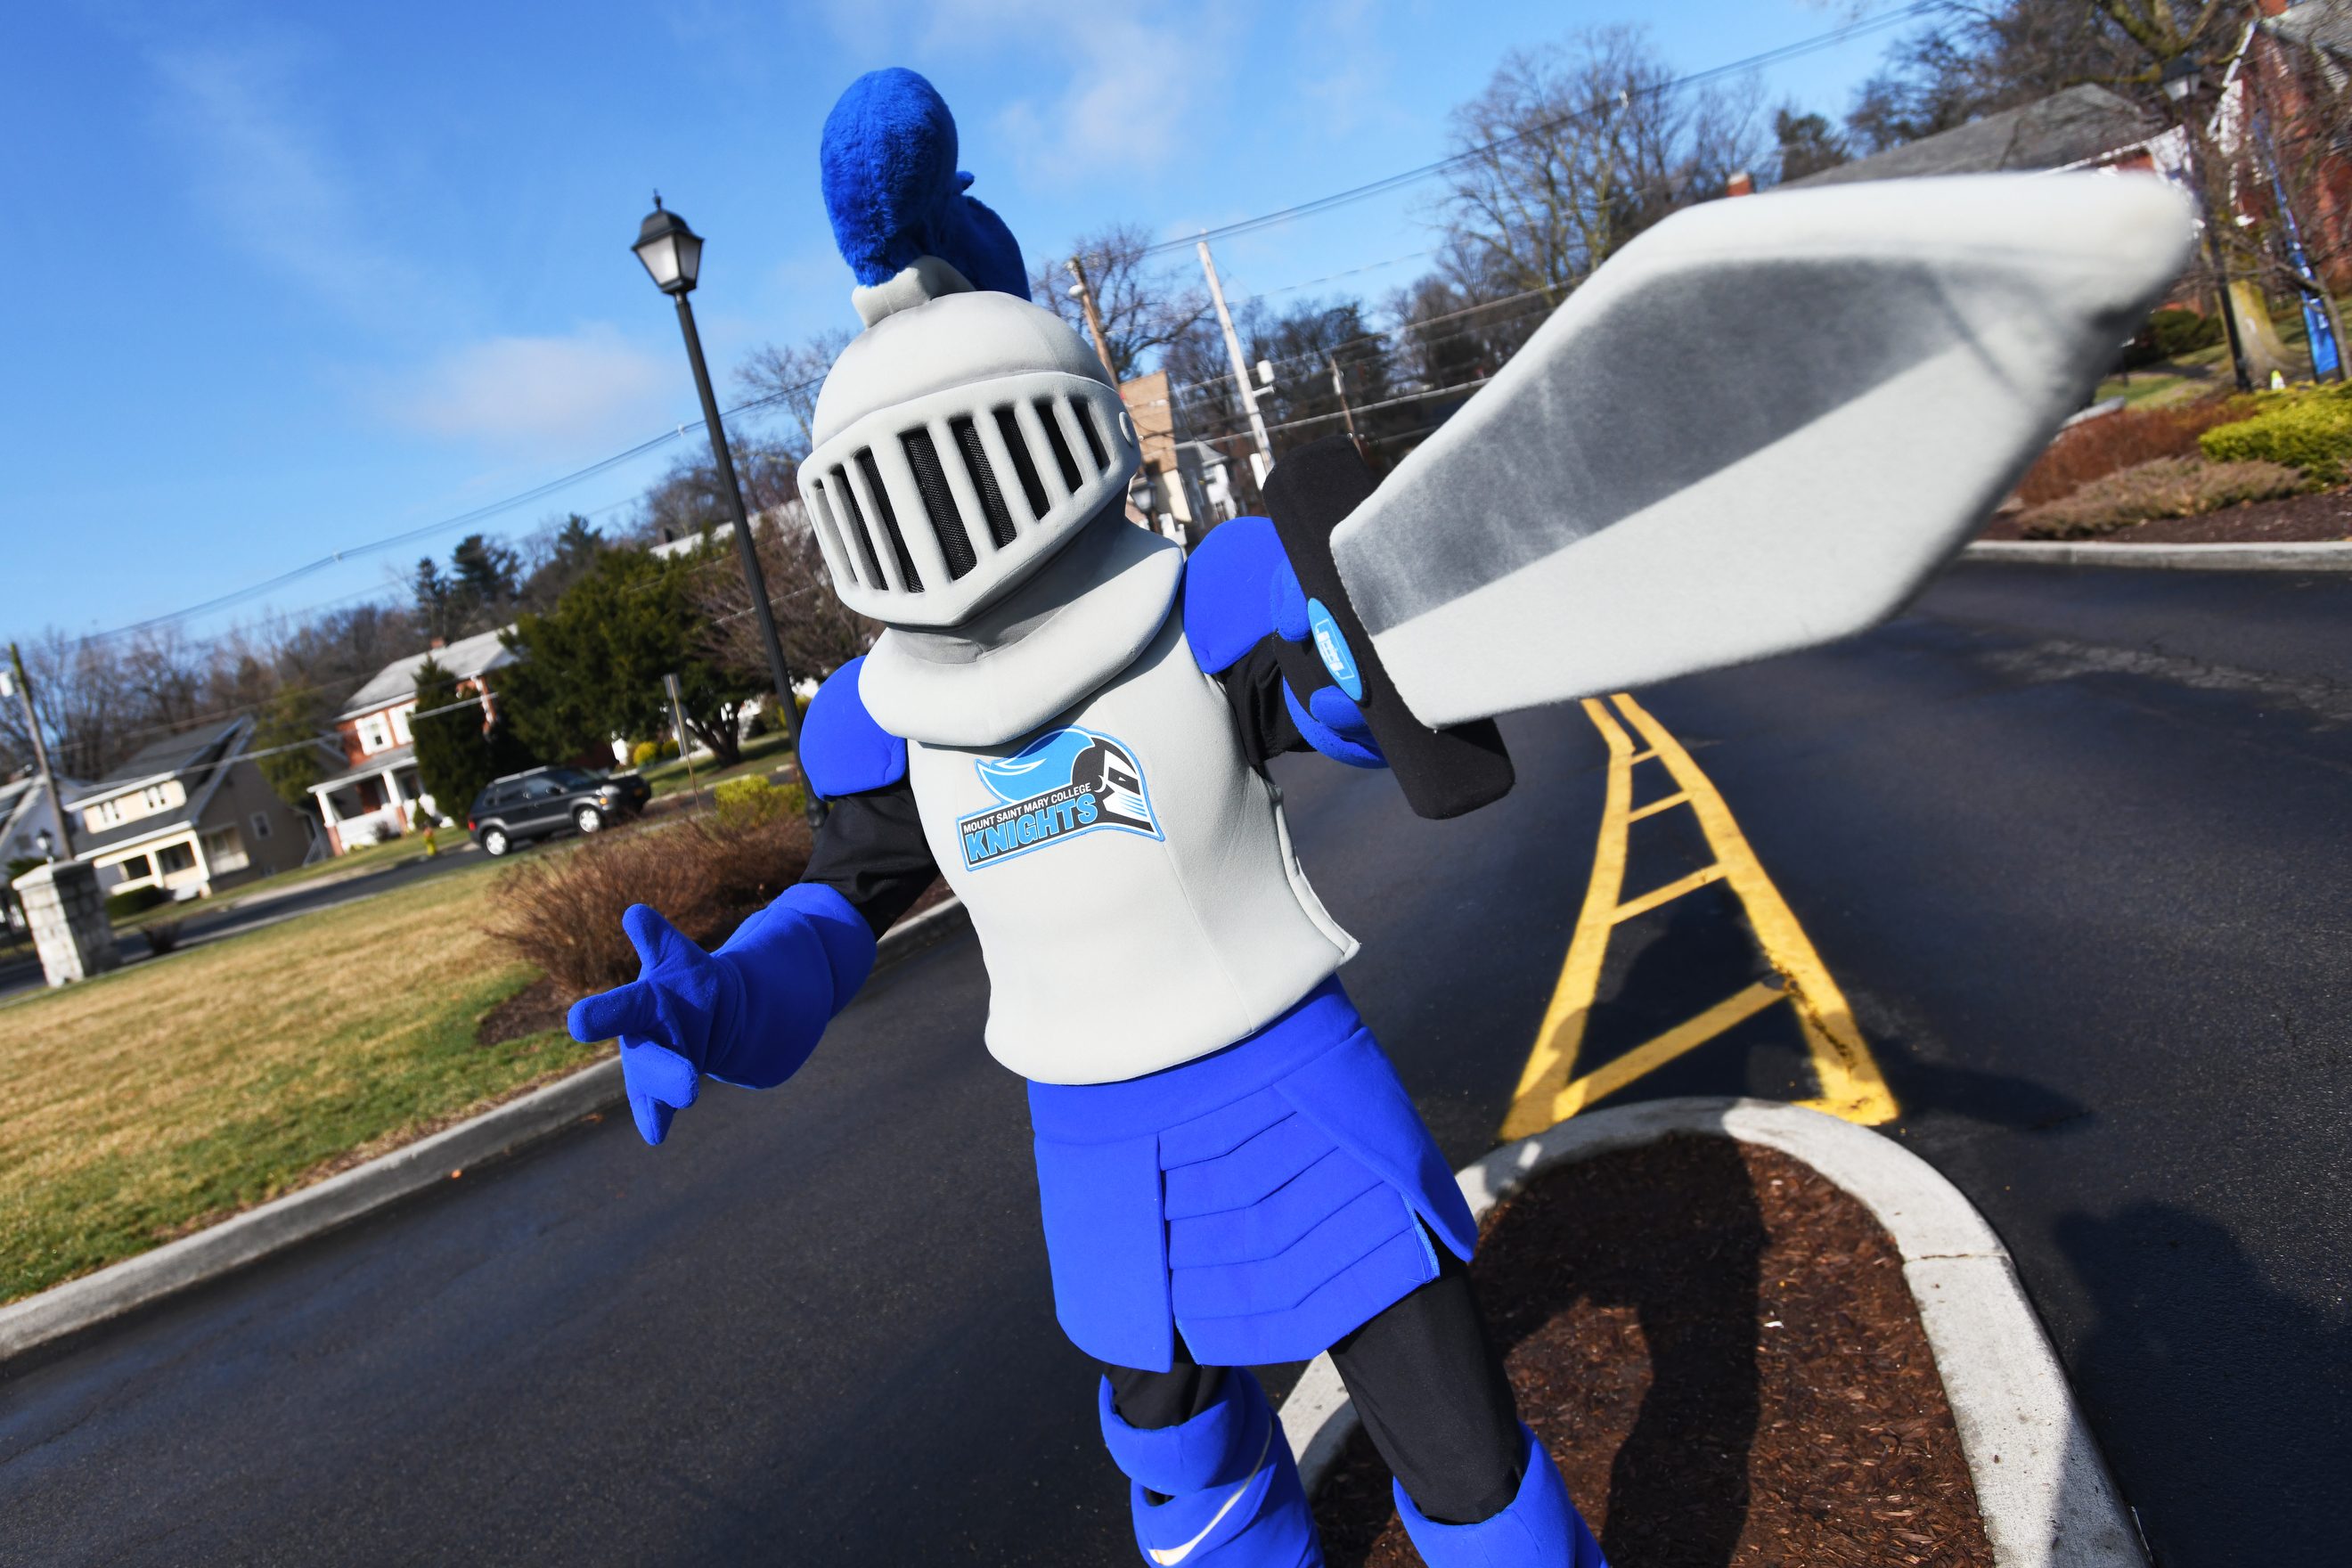 College mascot pointing his sword